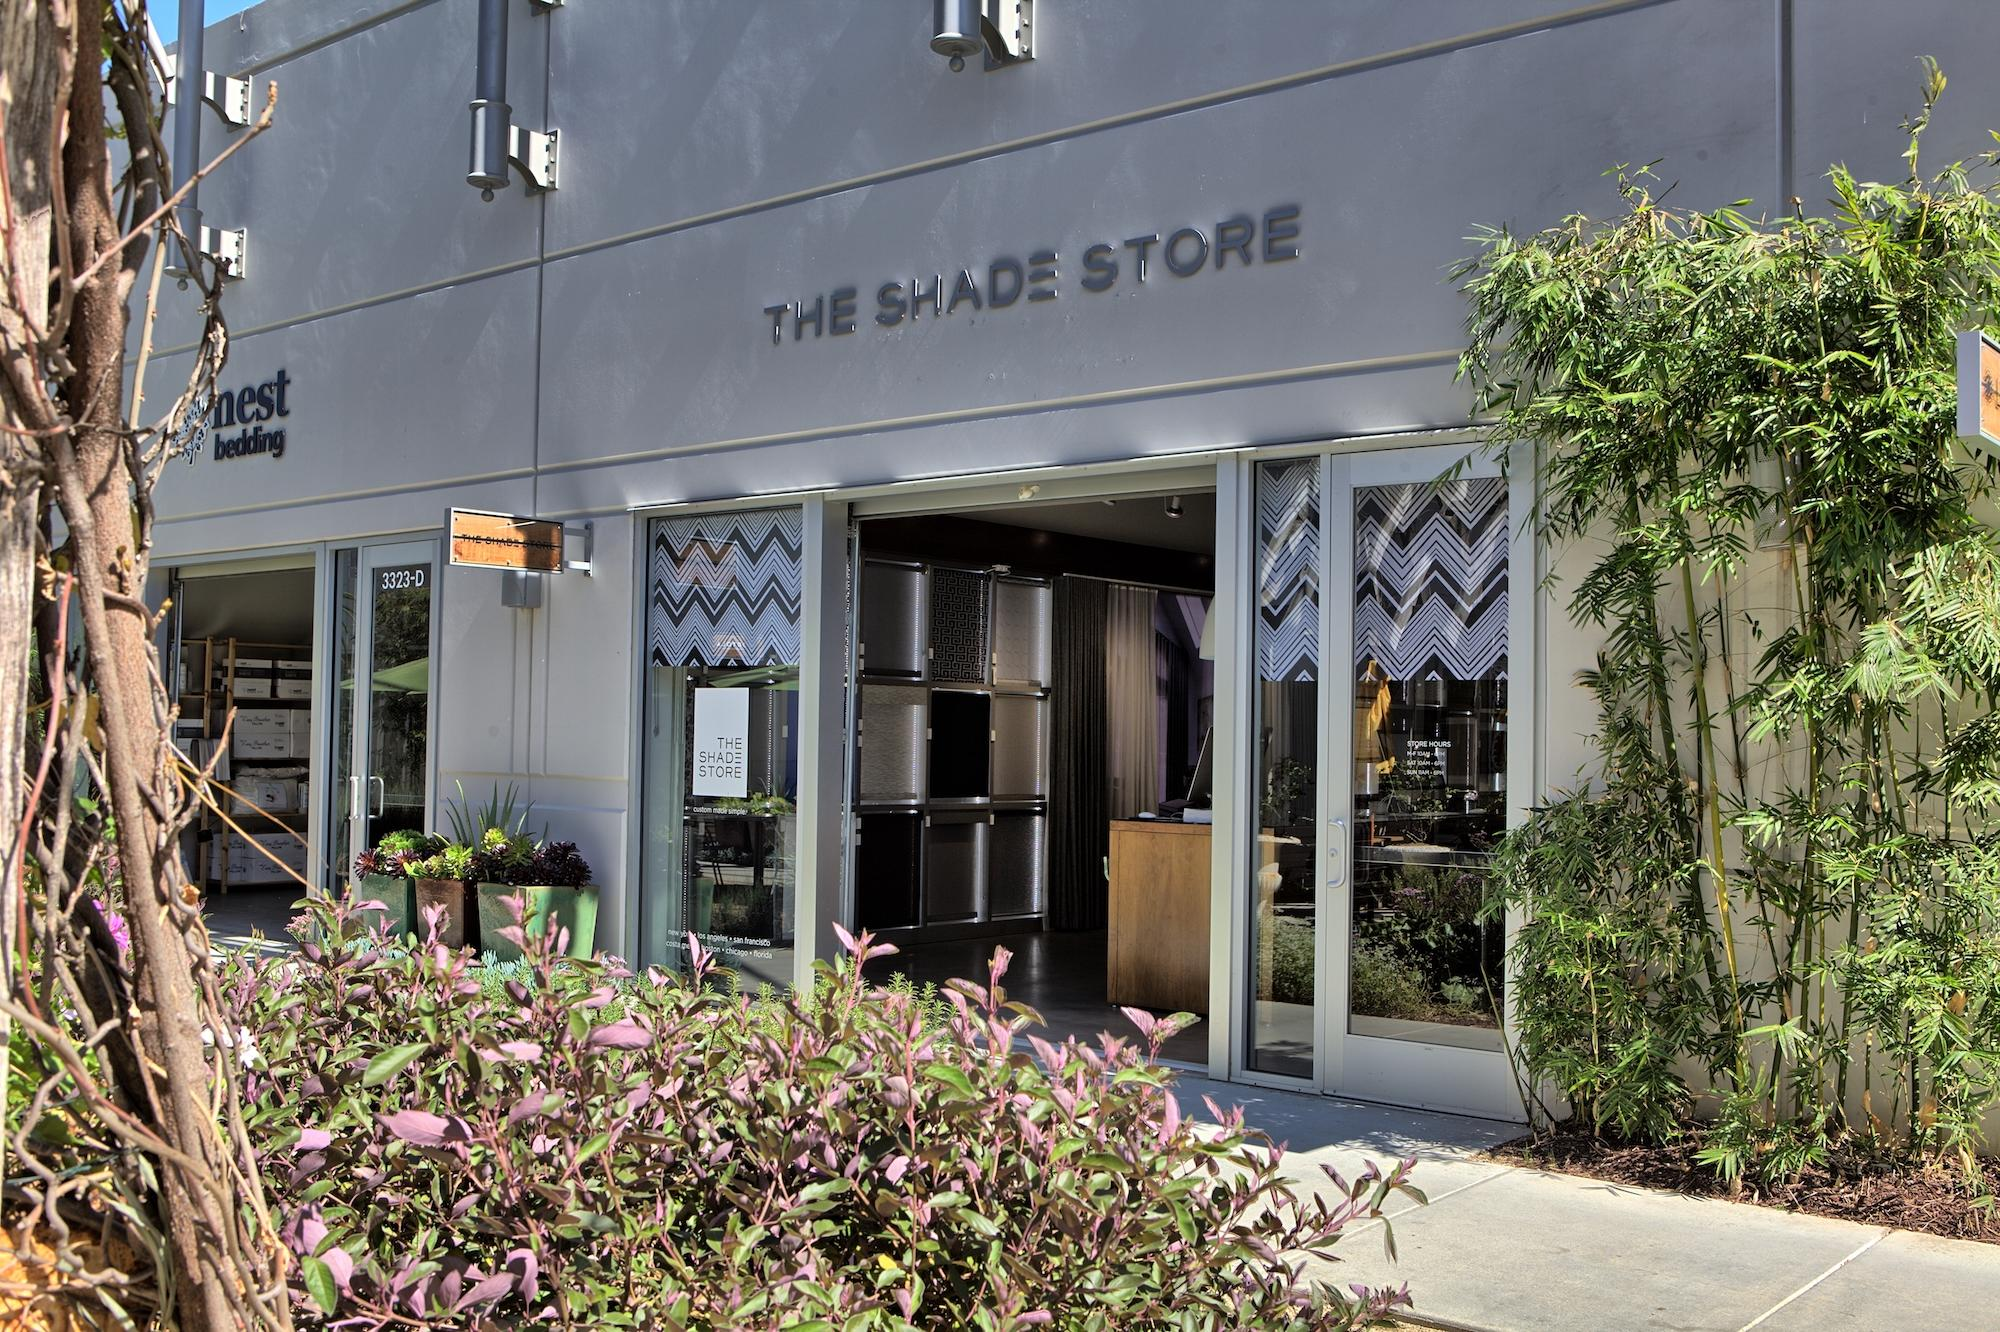 The Shade Store image 17